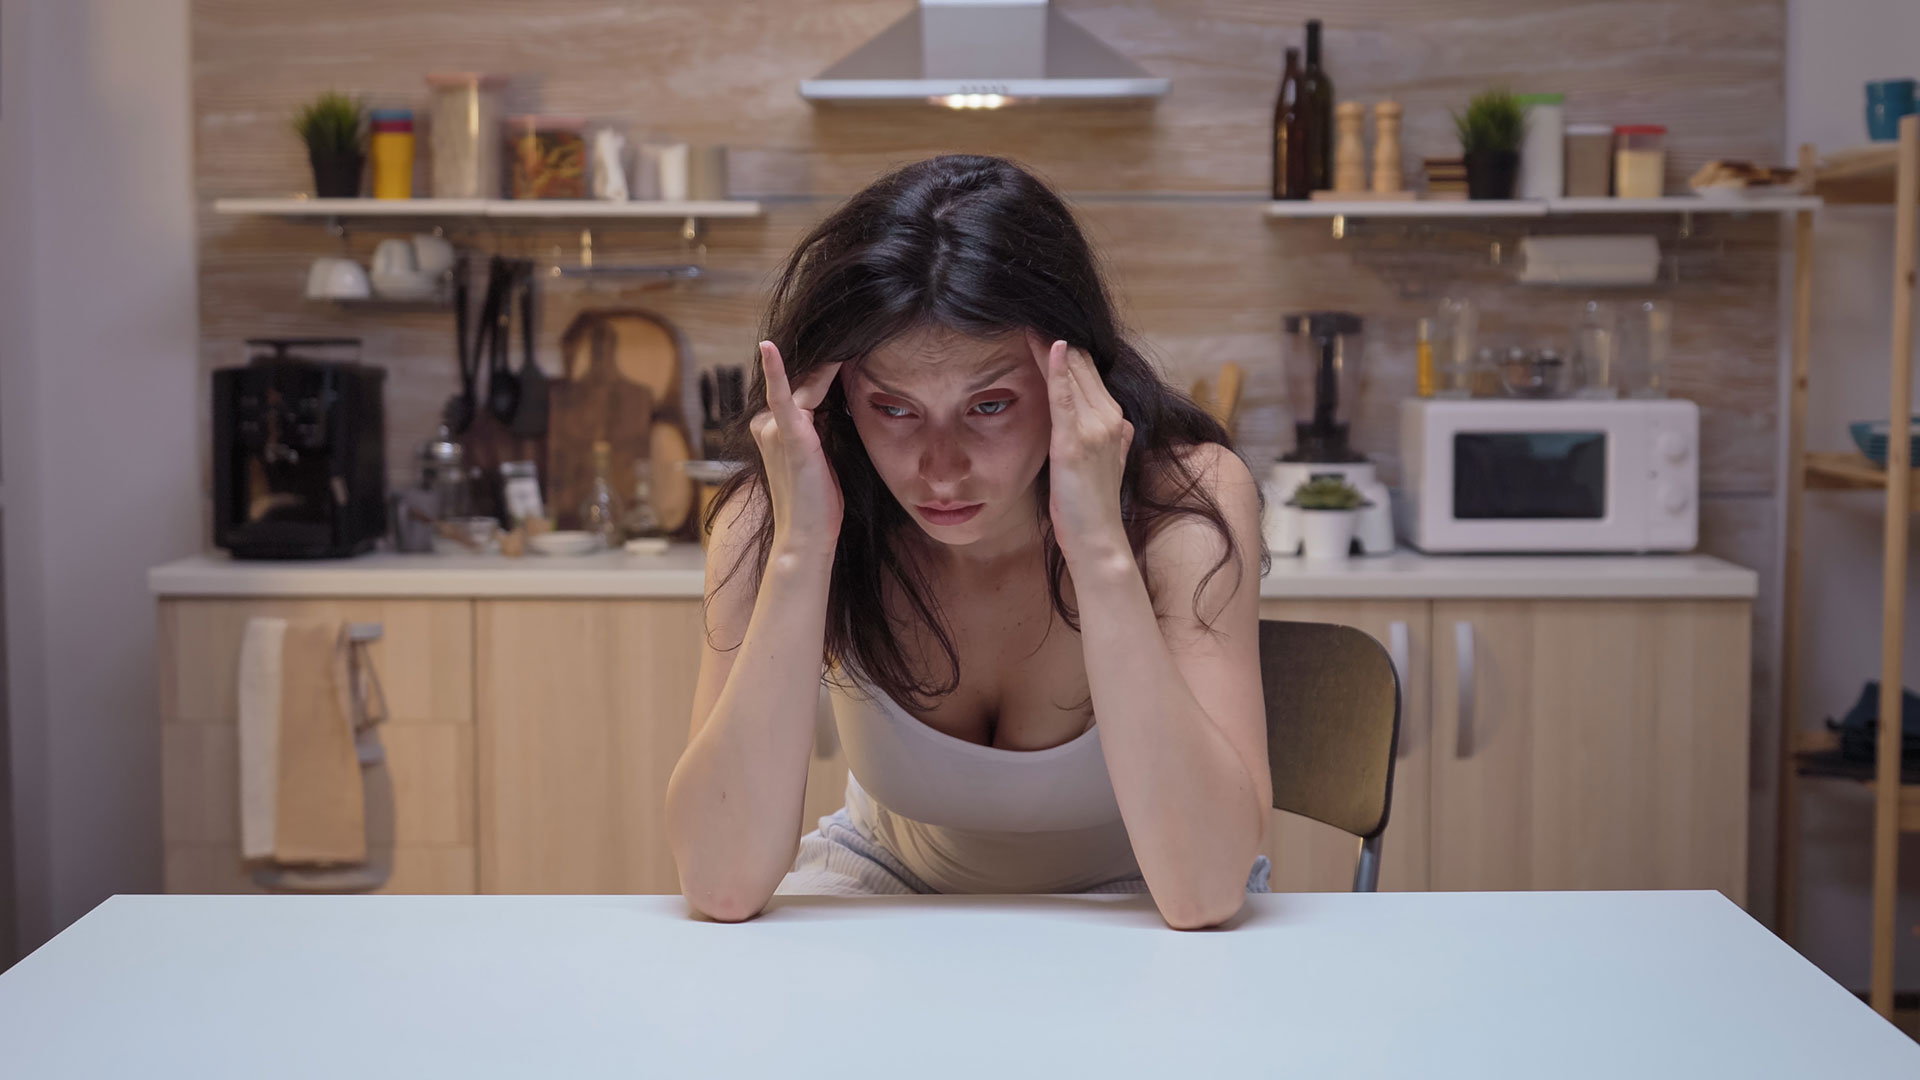 Some Depressive Disorders, Their Symptoms and Reasons